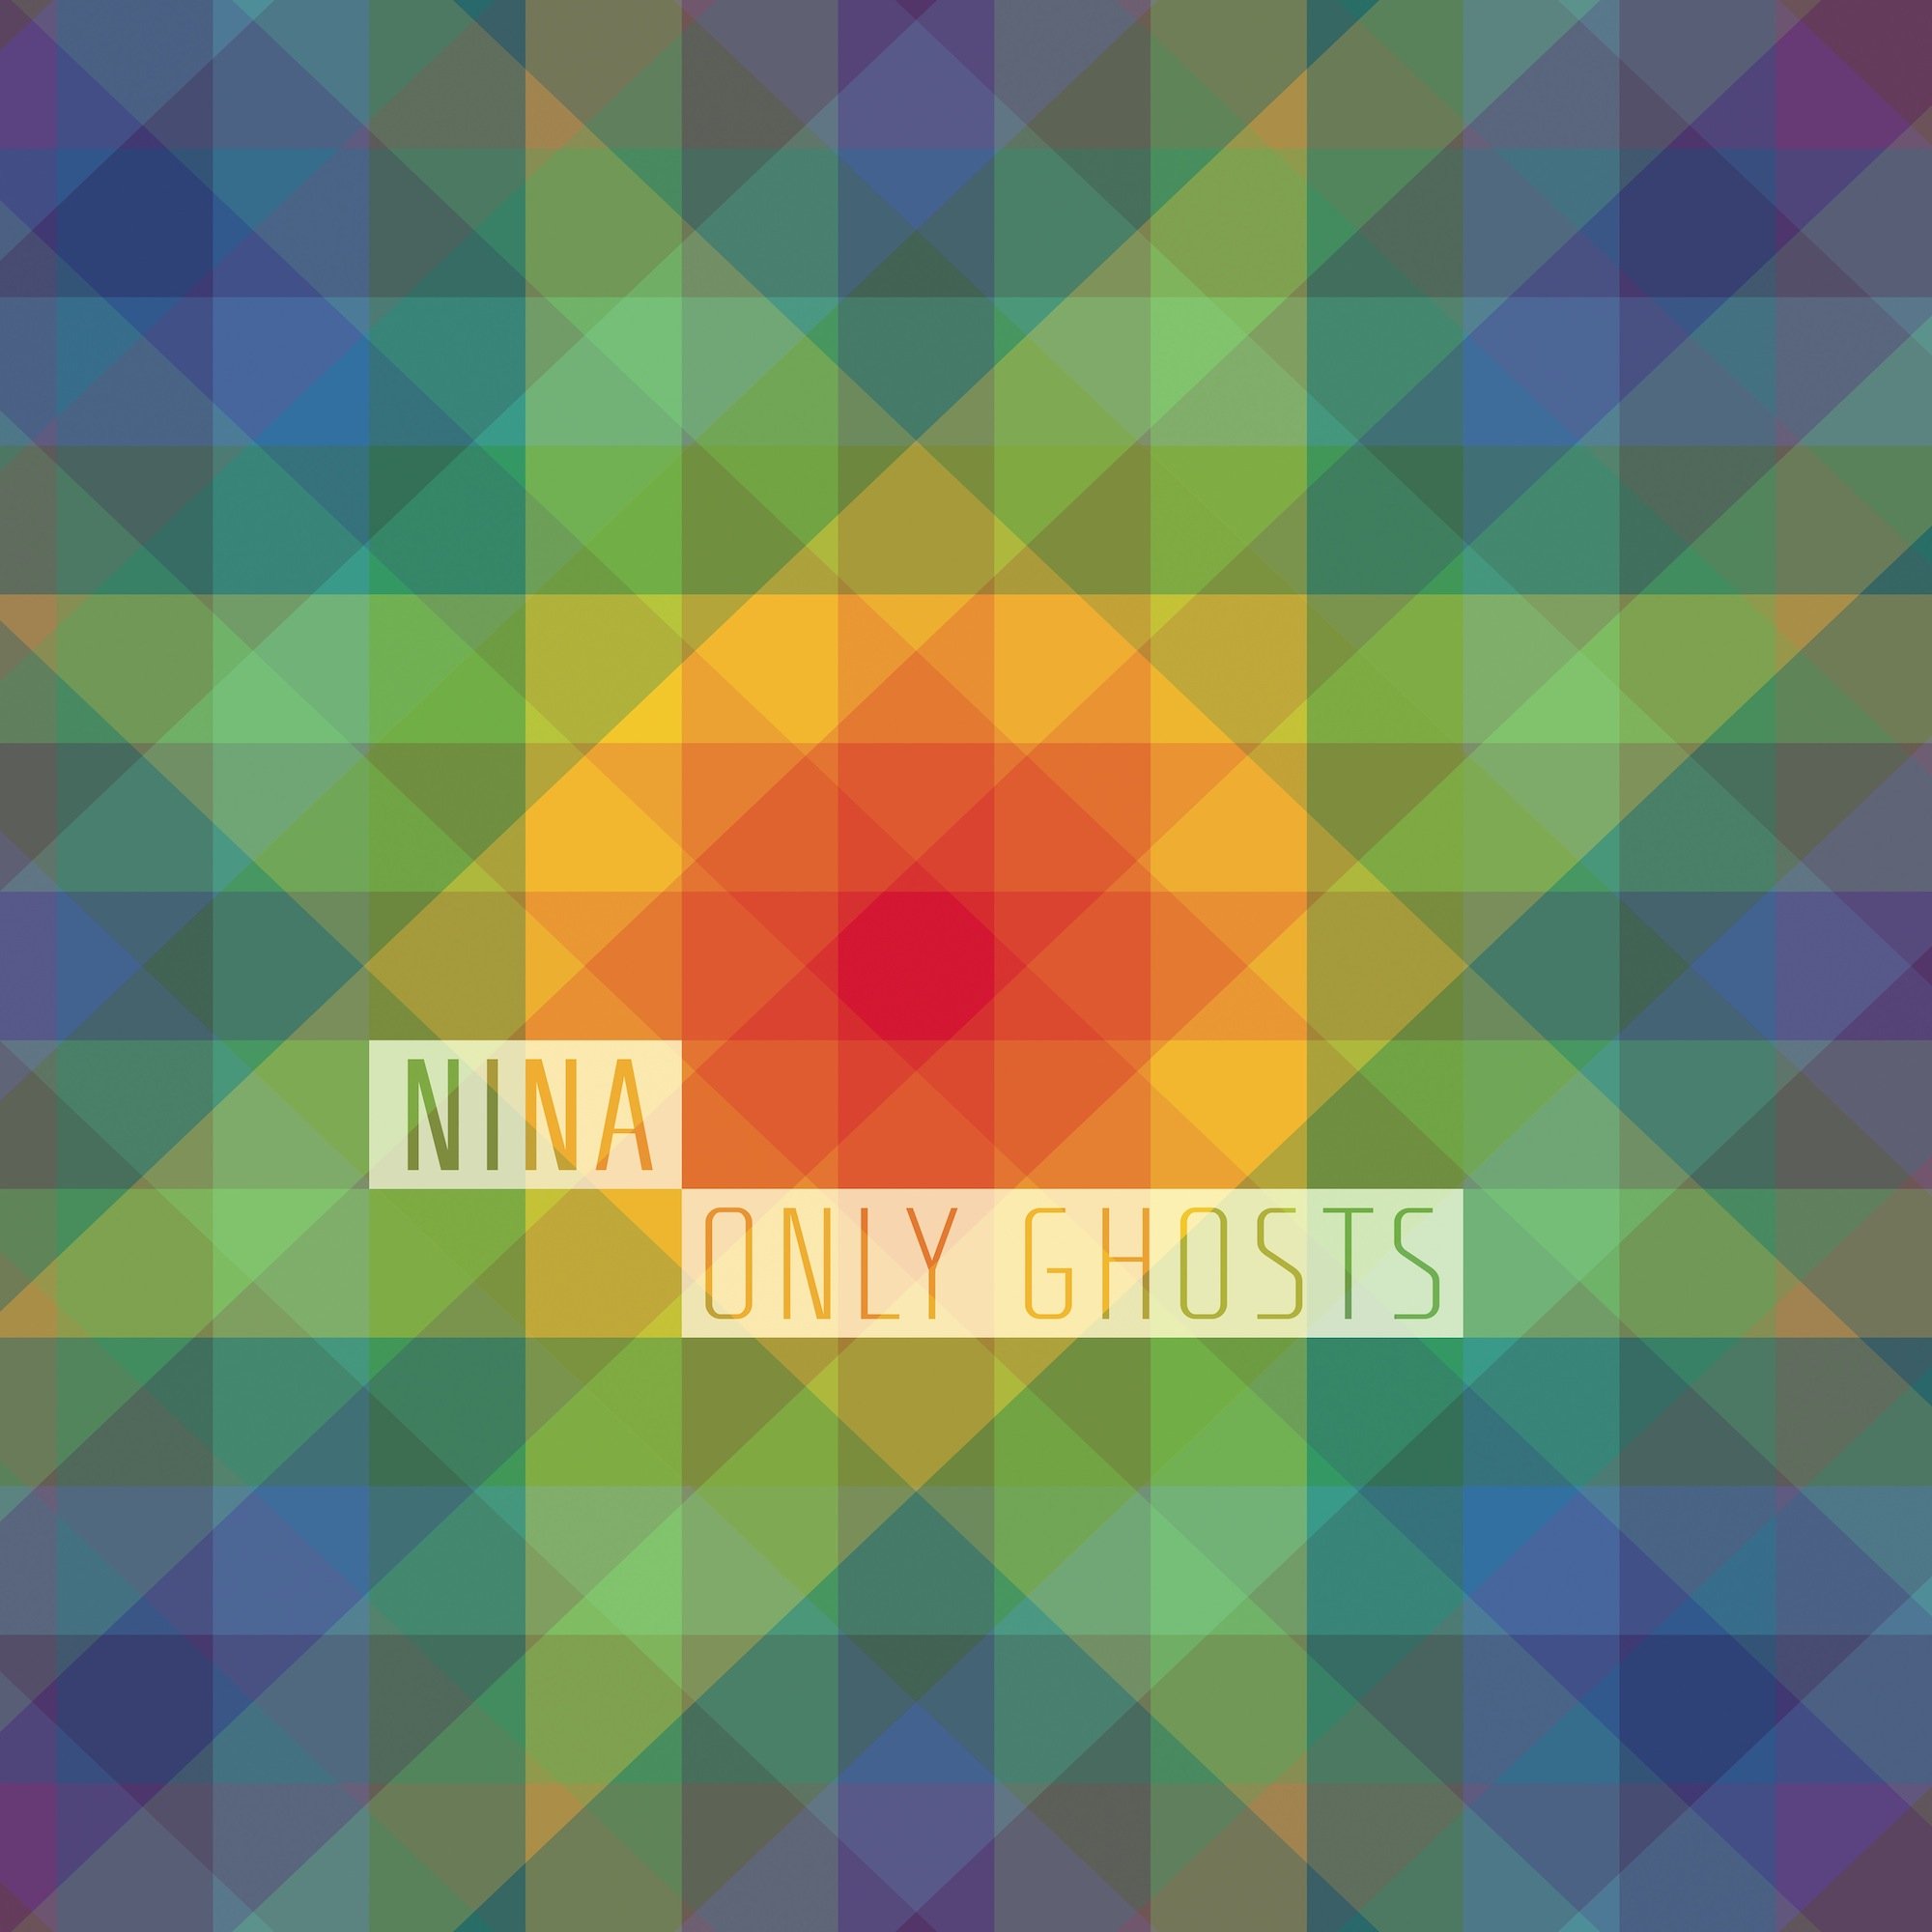 NI NA- Only Ghosts